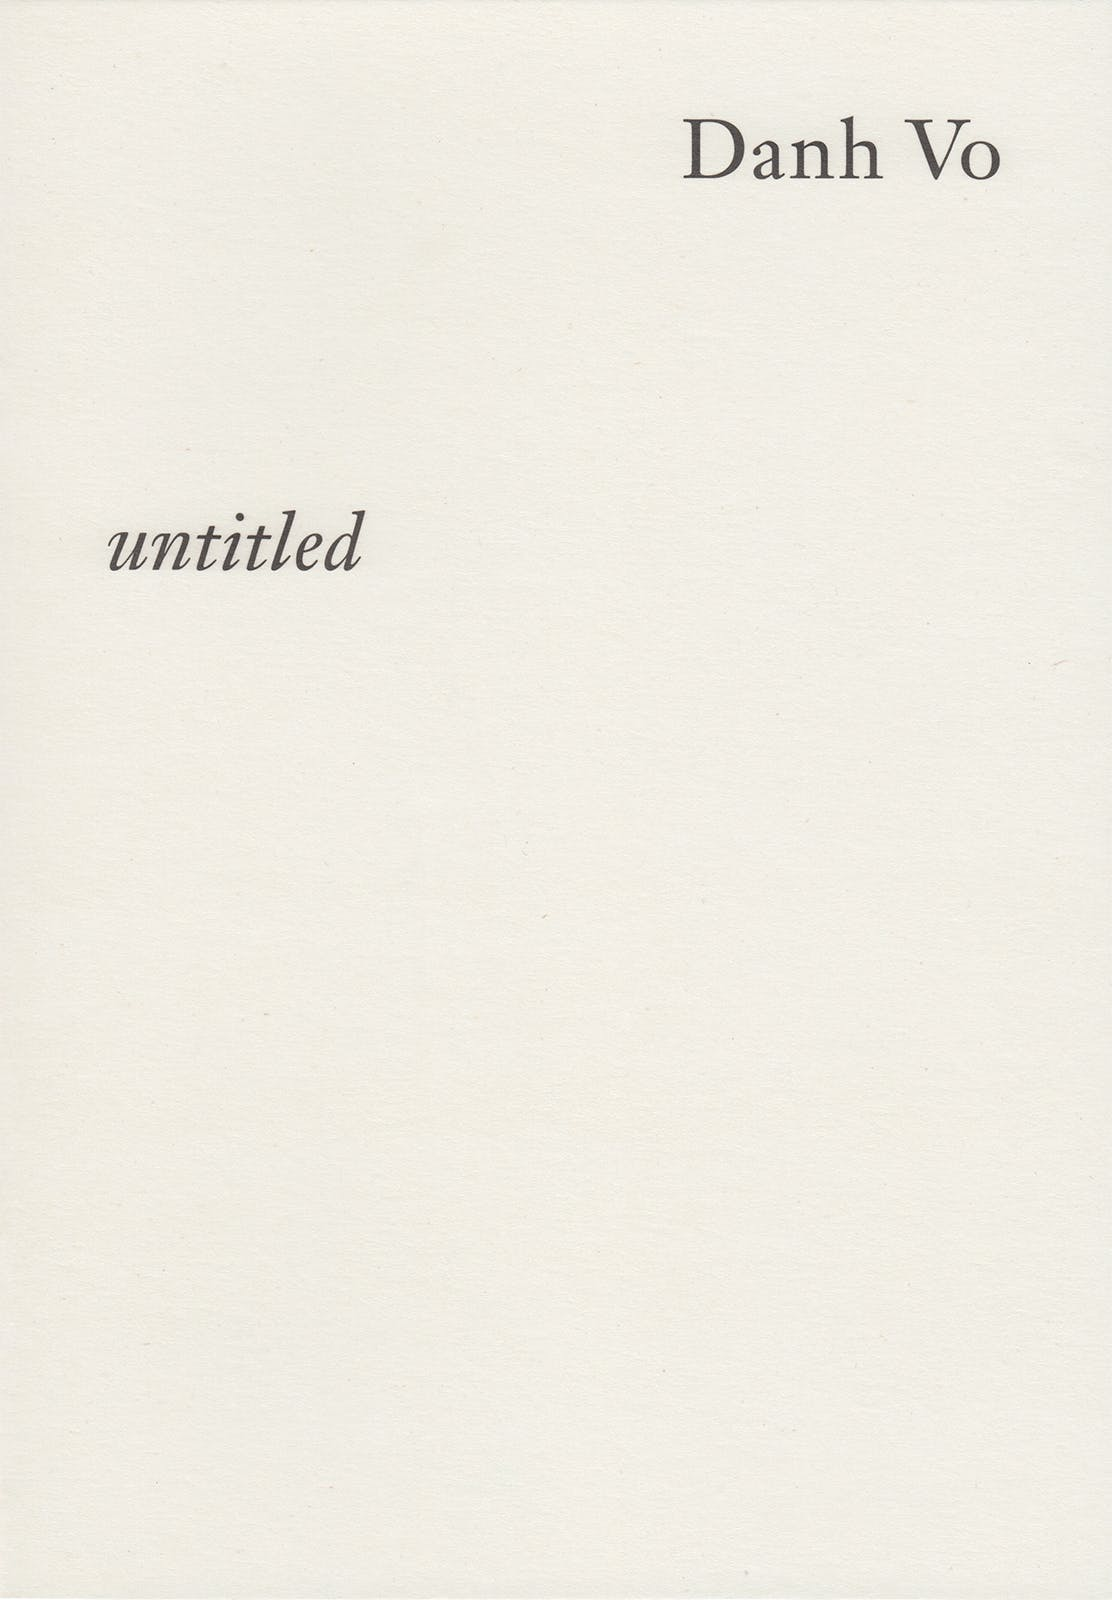 Danh Vo, untitled, Print, Graphic Design by Wolfe Hall